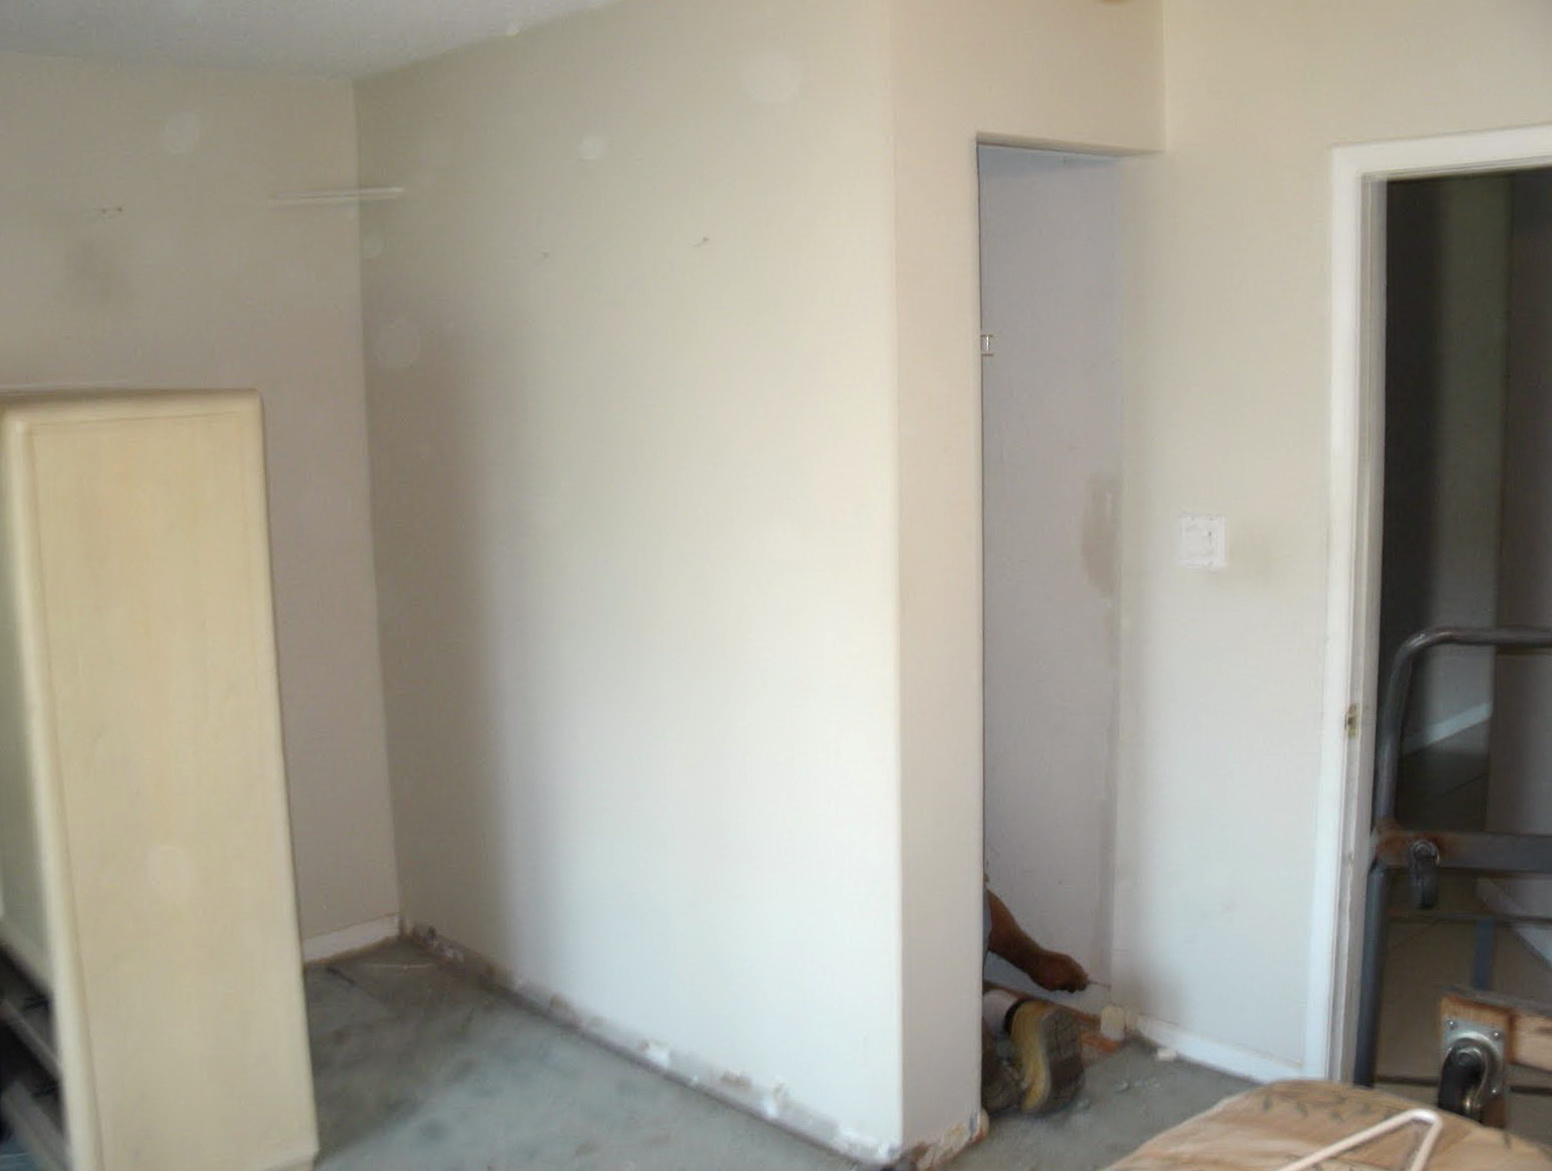 Installing Closet Doors Over Laminate Flooring